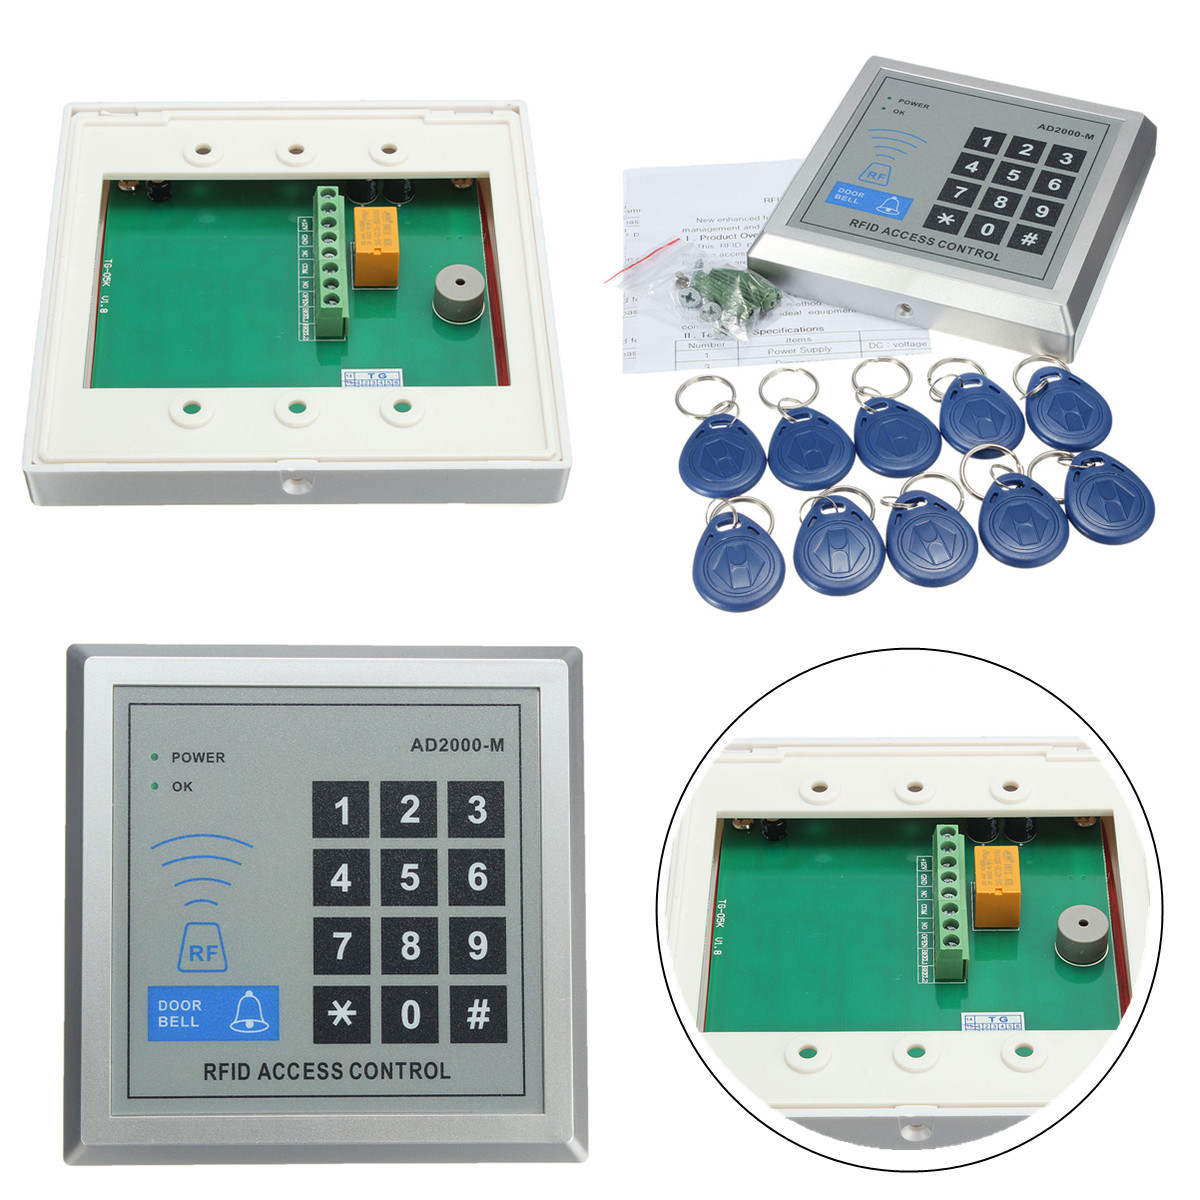 10 Keys 500 User AD2000M Security RFID Proximity Entry Door Lock – Keys Can Access Control Wiring Diagram